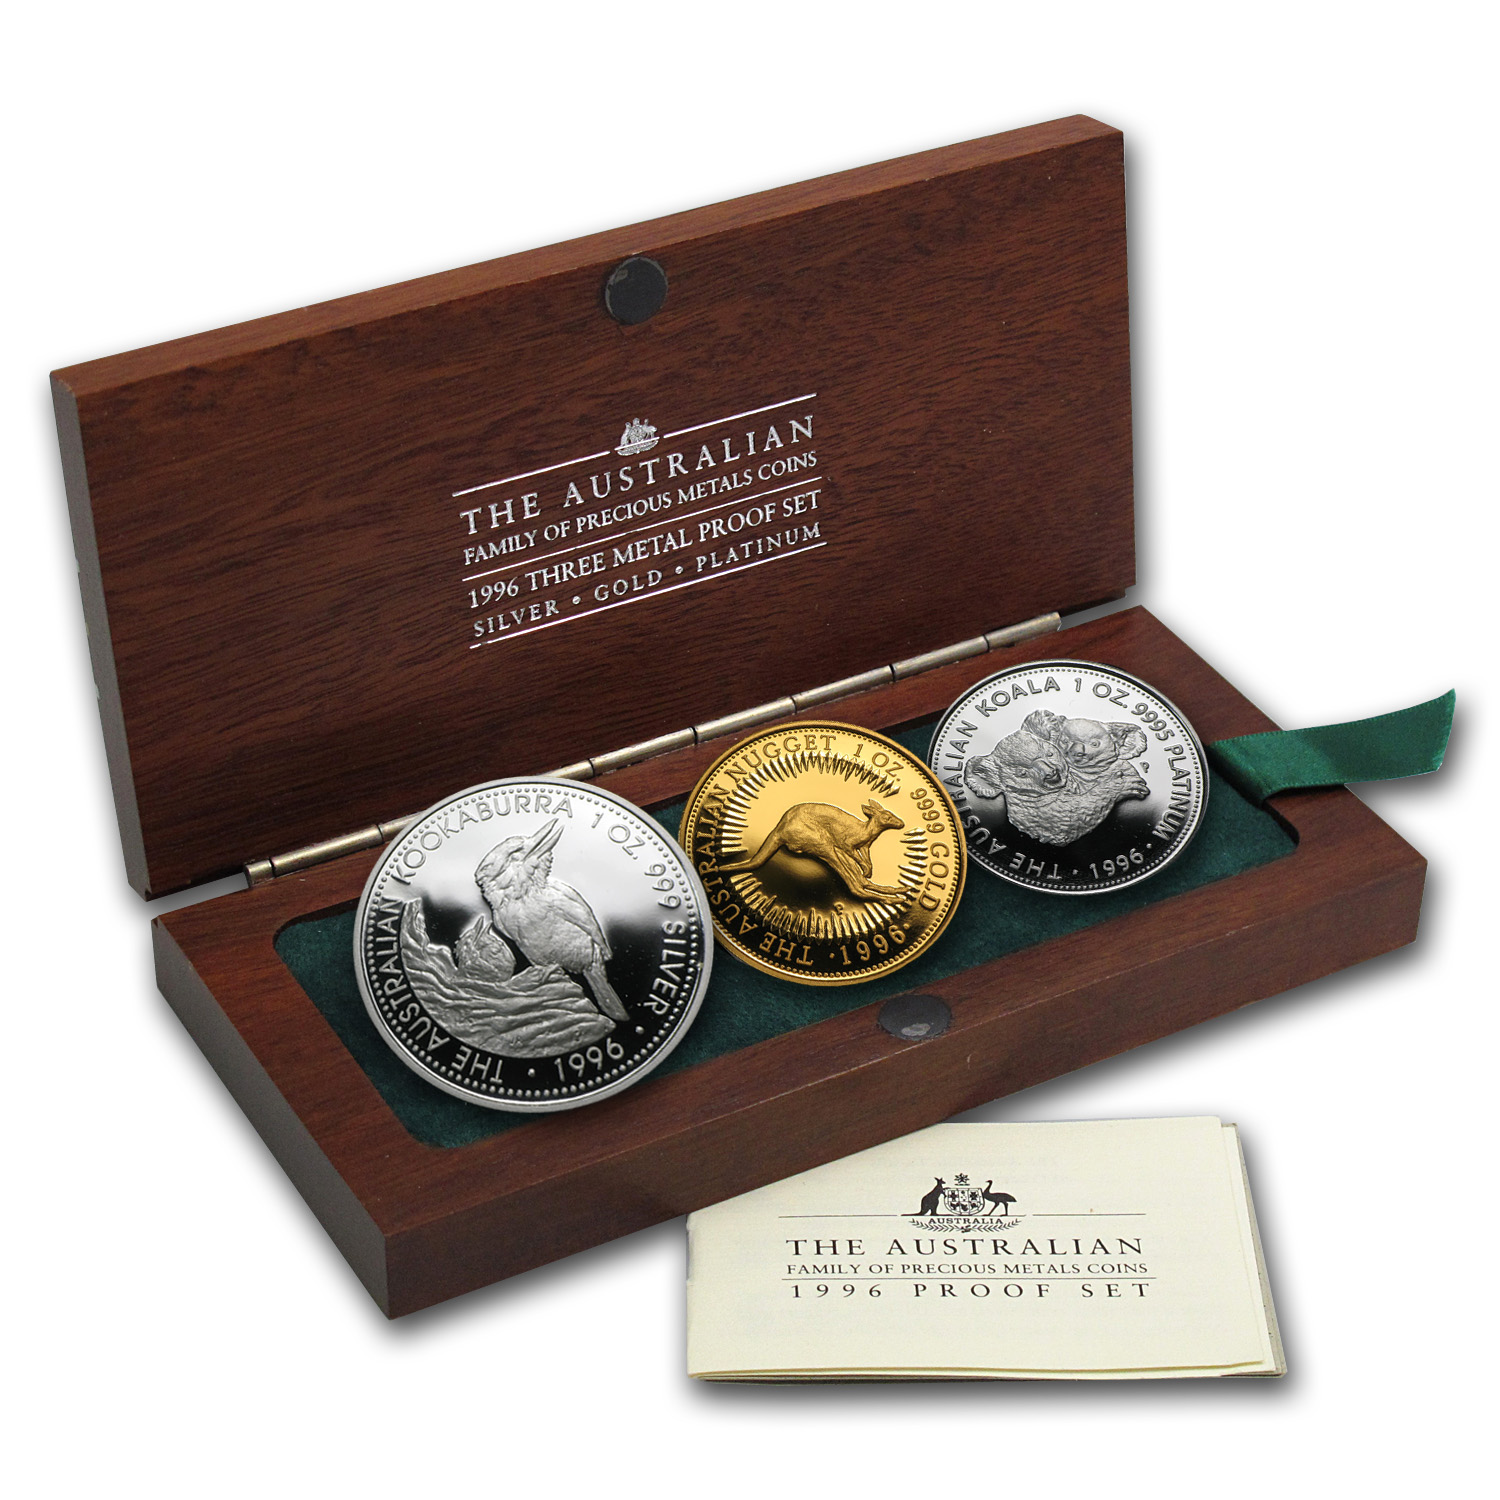 1996 3-Coin Proof Australian Family of Precious Metals Set